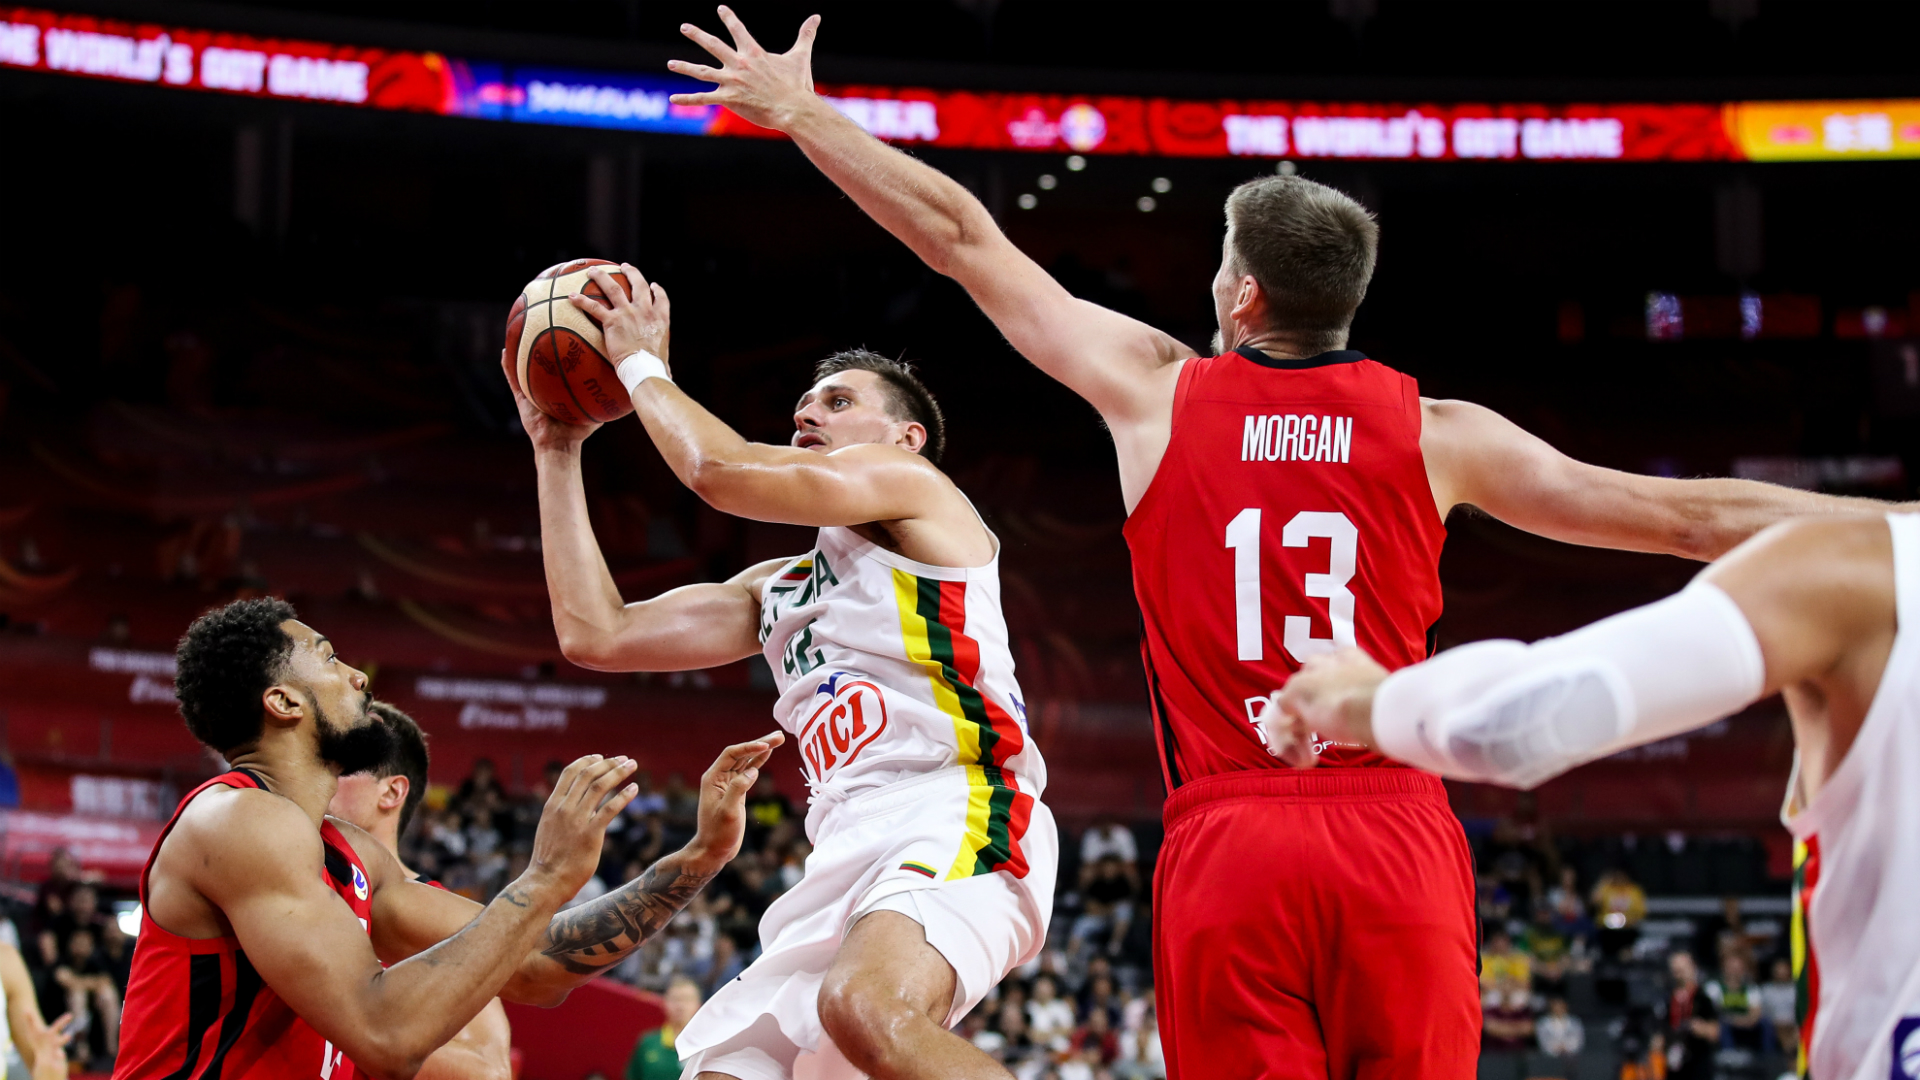 FIBA World Cup 2019: Canada loses to Lithuania, fails to advance out of group